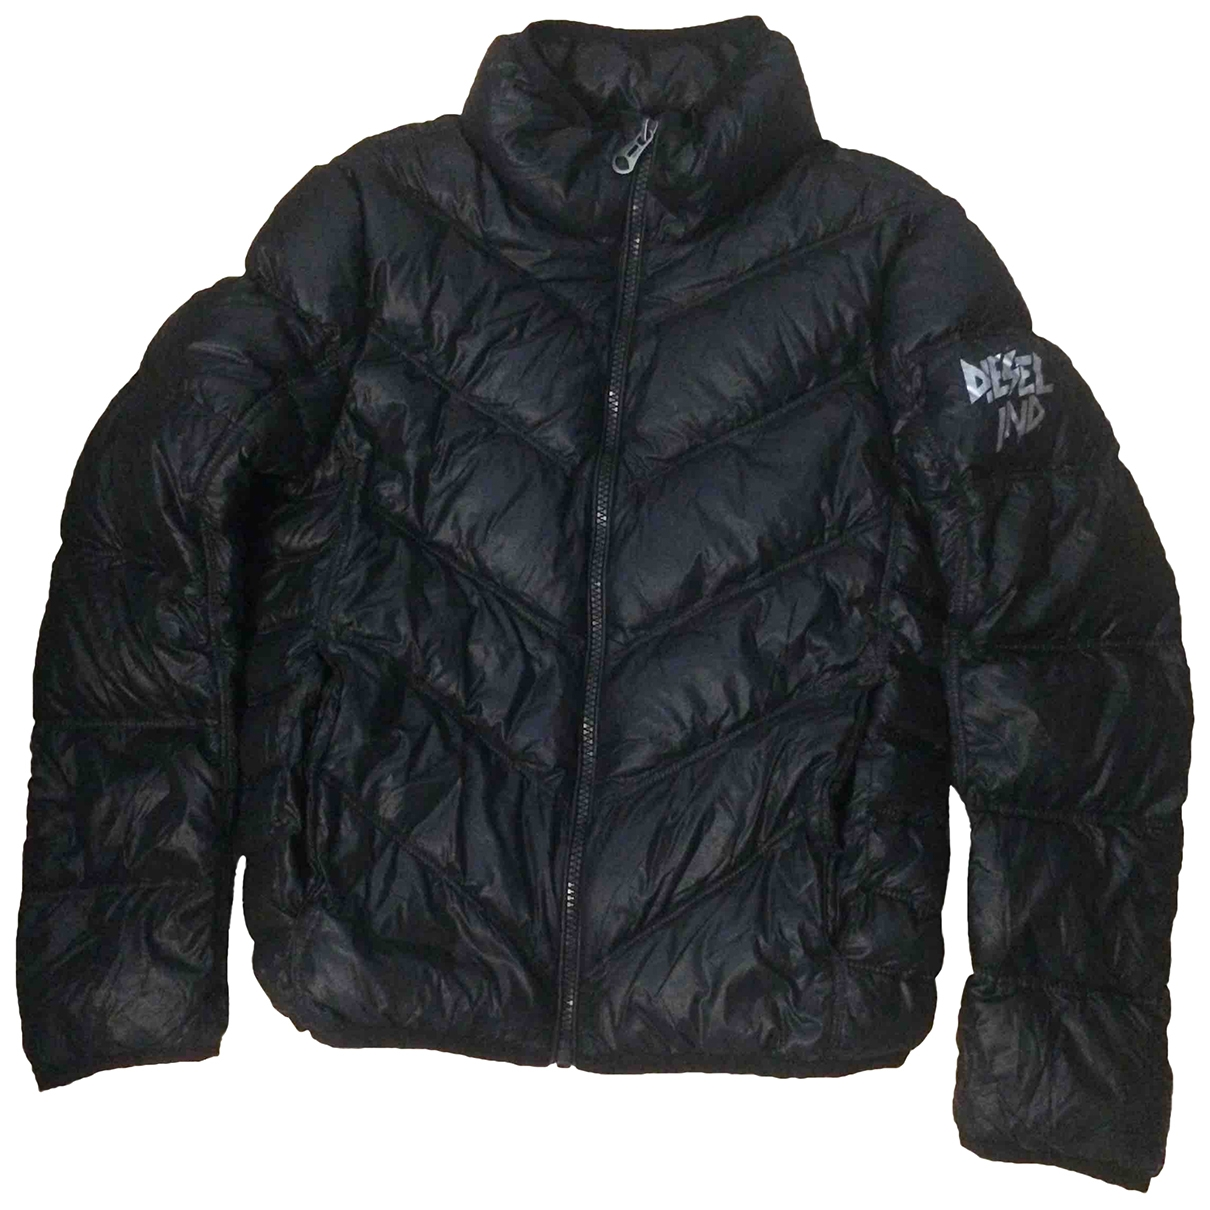 Diesel \N Black jacket & coat for Kids 8 years - up to 128cm FR